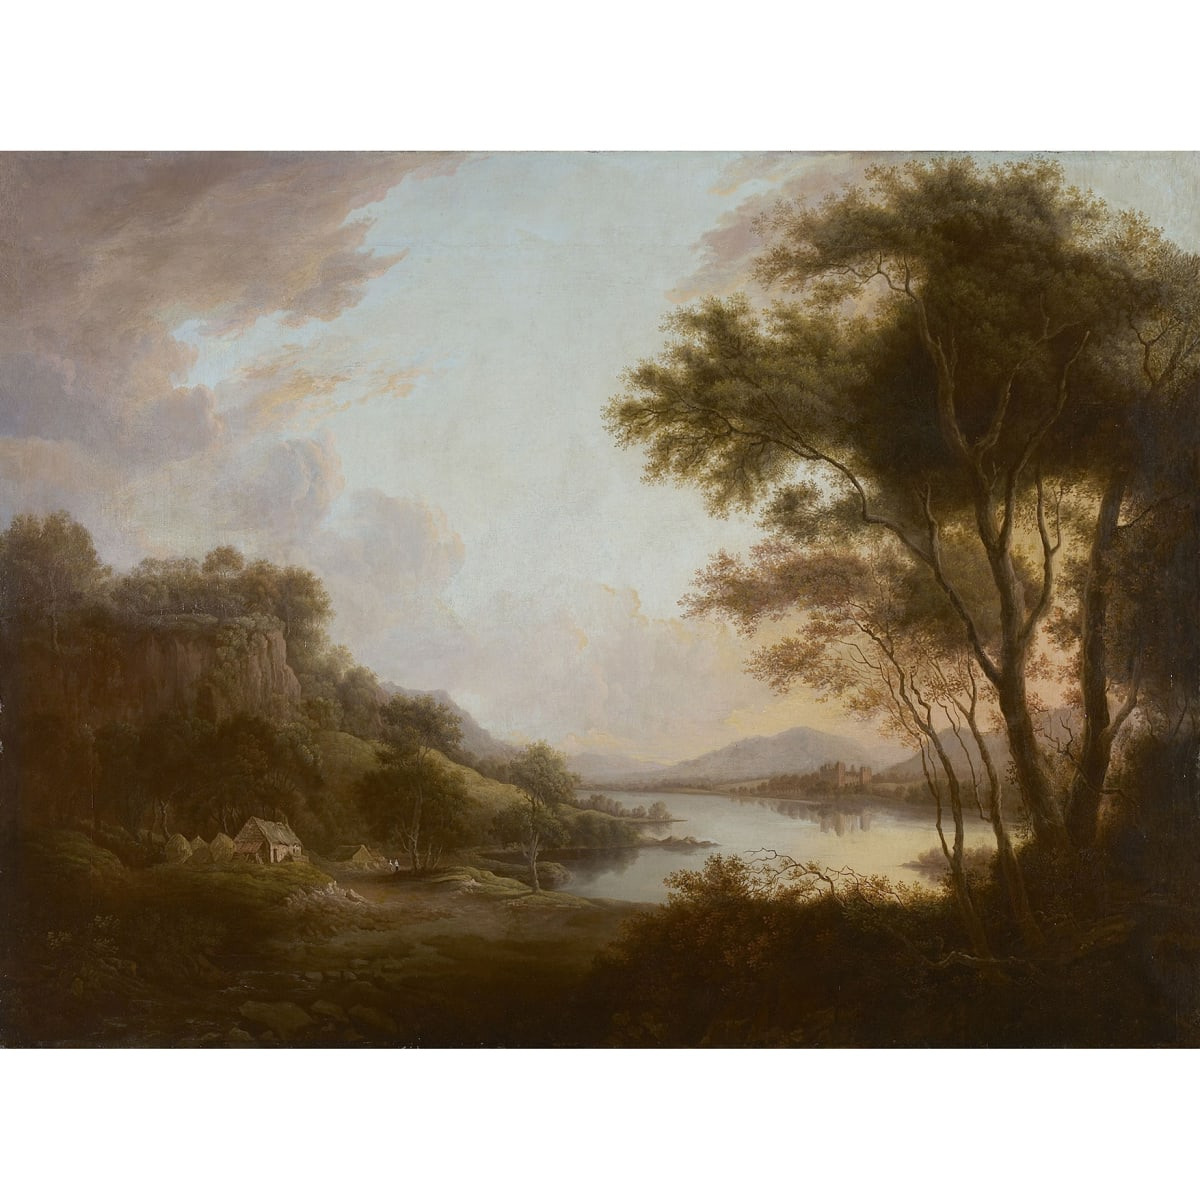 Alexander Nasmyth Elcho Castle from the Tay oil on canvas 27 x 35 inches